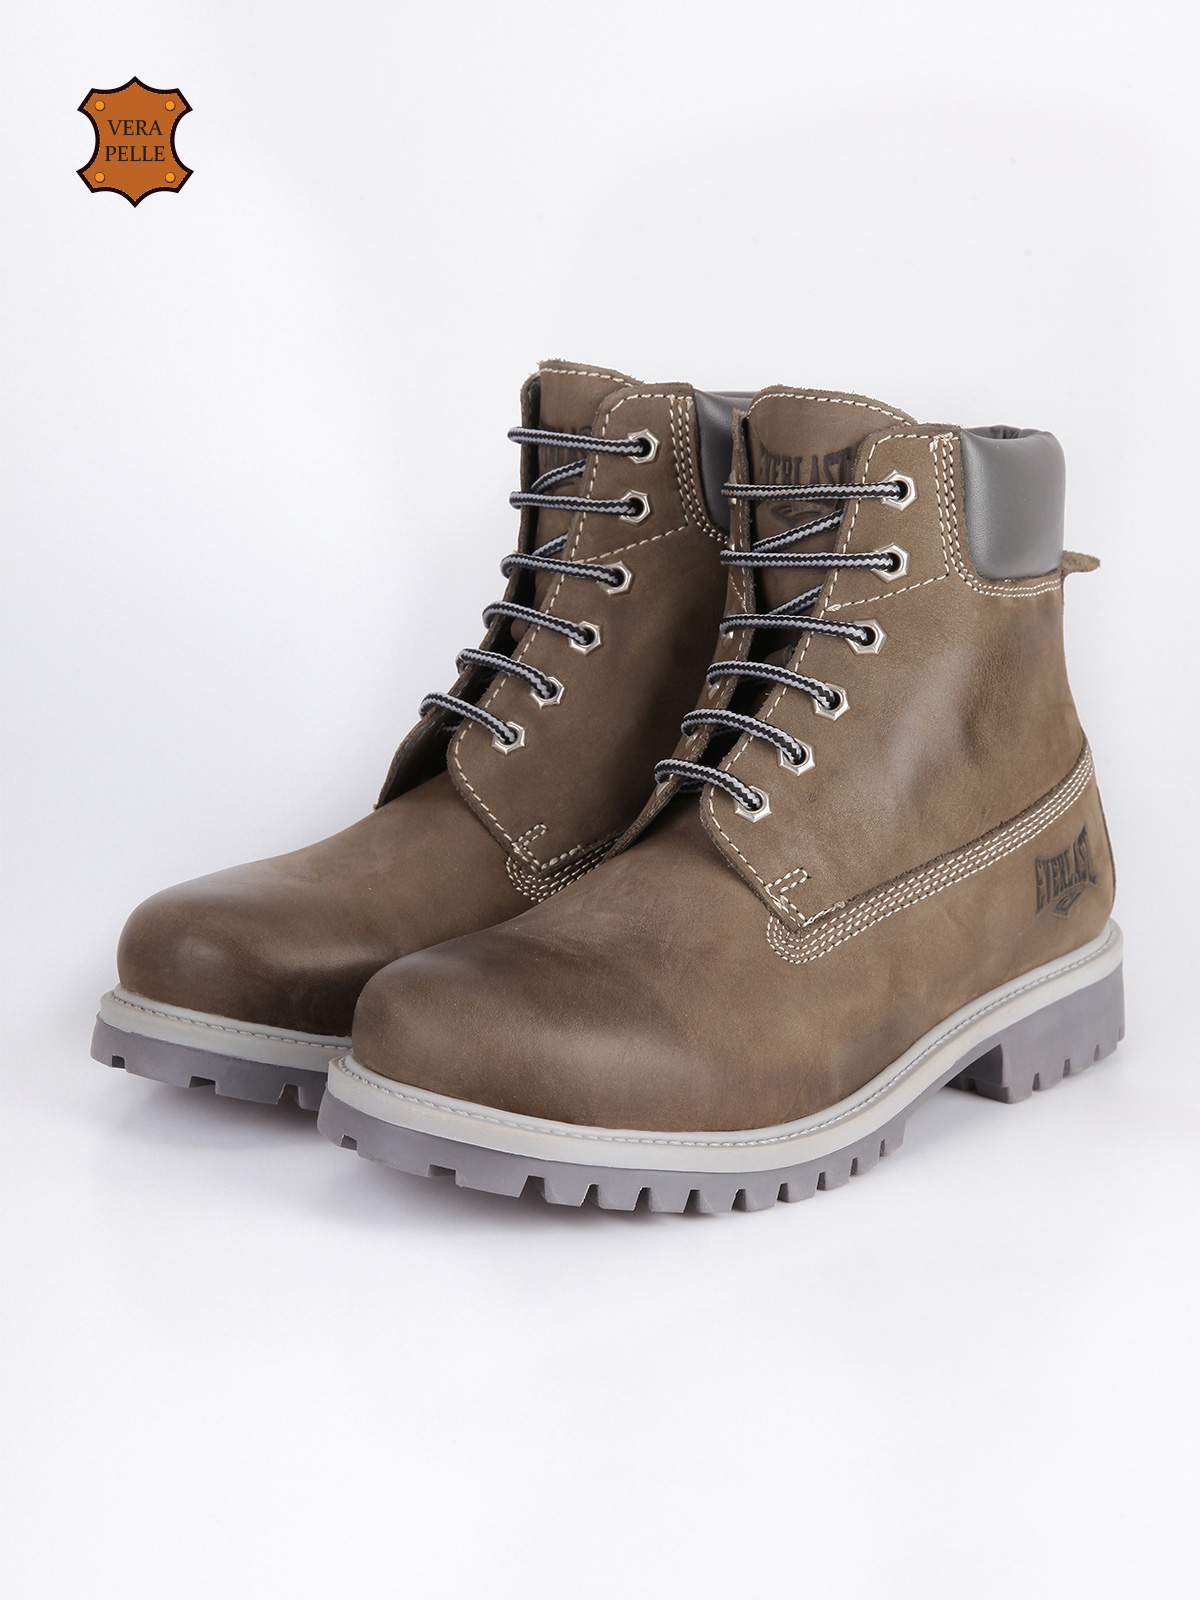 EVER LAST Boots Combat Boots Lace Up Leather